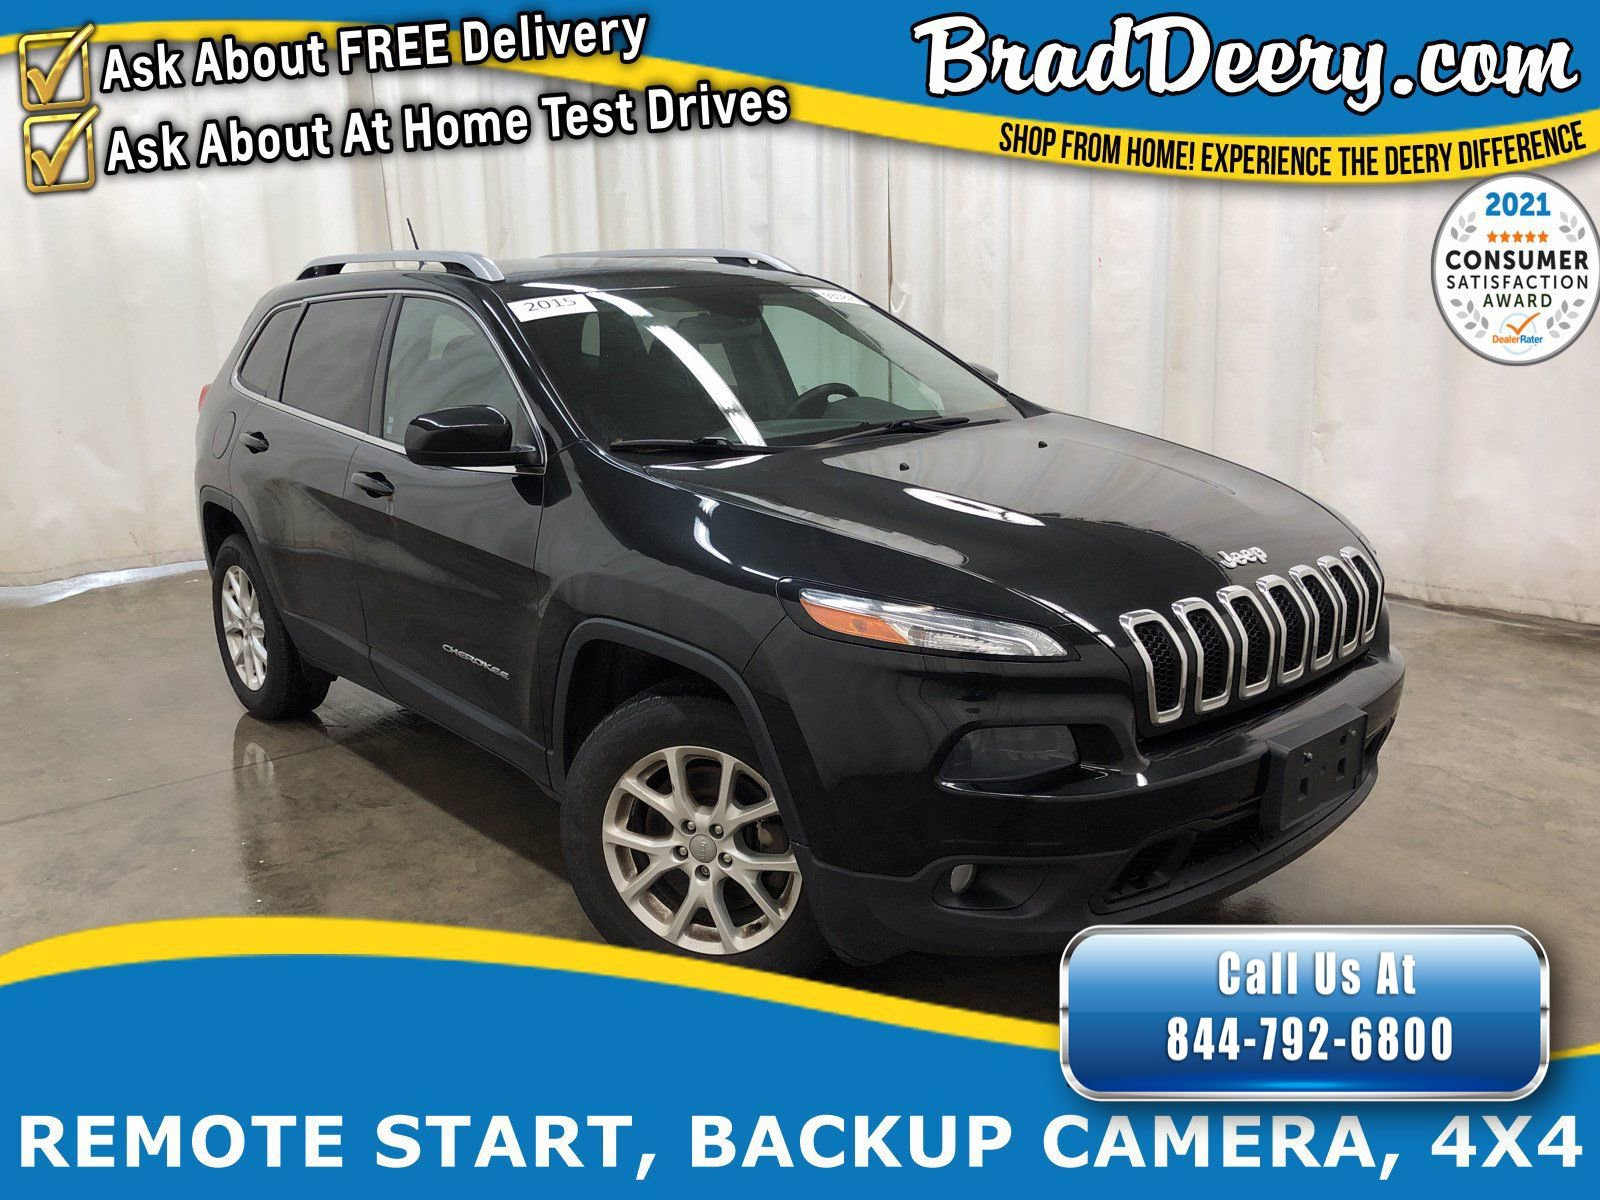 2015 Jeep Cherokee Latitude 4X4 w/ No Accidents, Heated Seats, Remote Start, Back-Up Camera & Jeep Active Drive